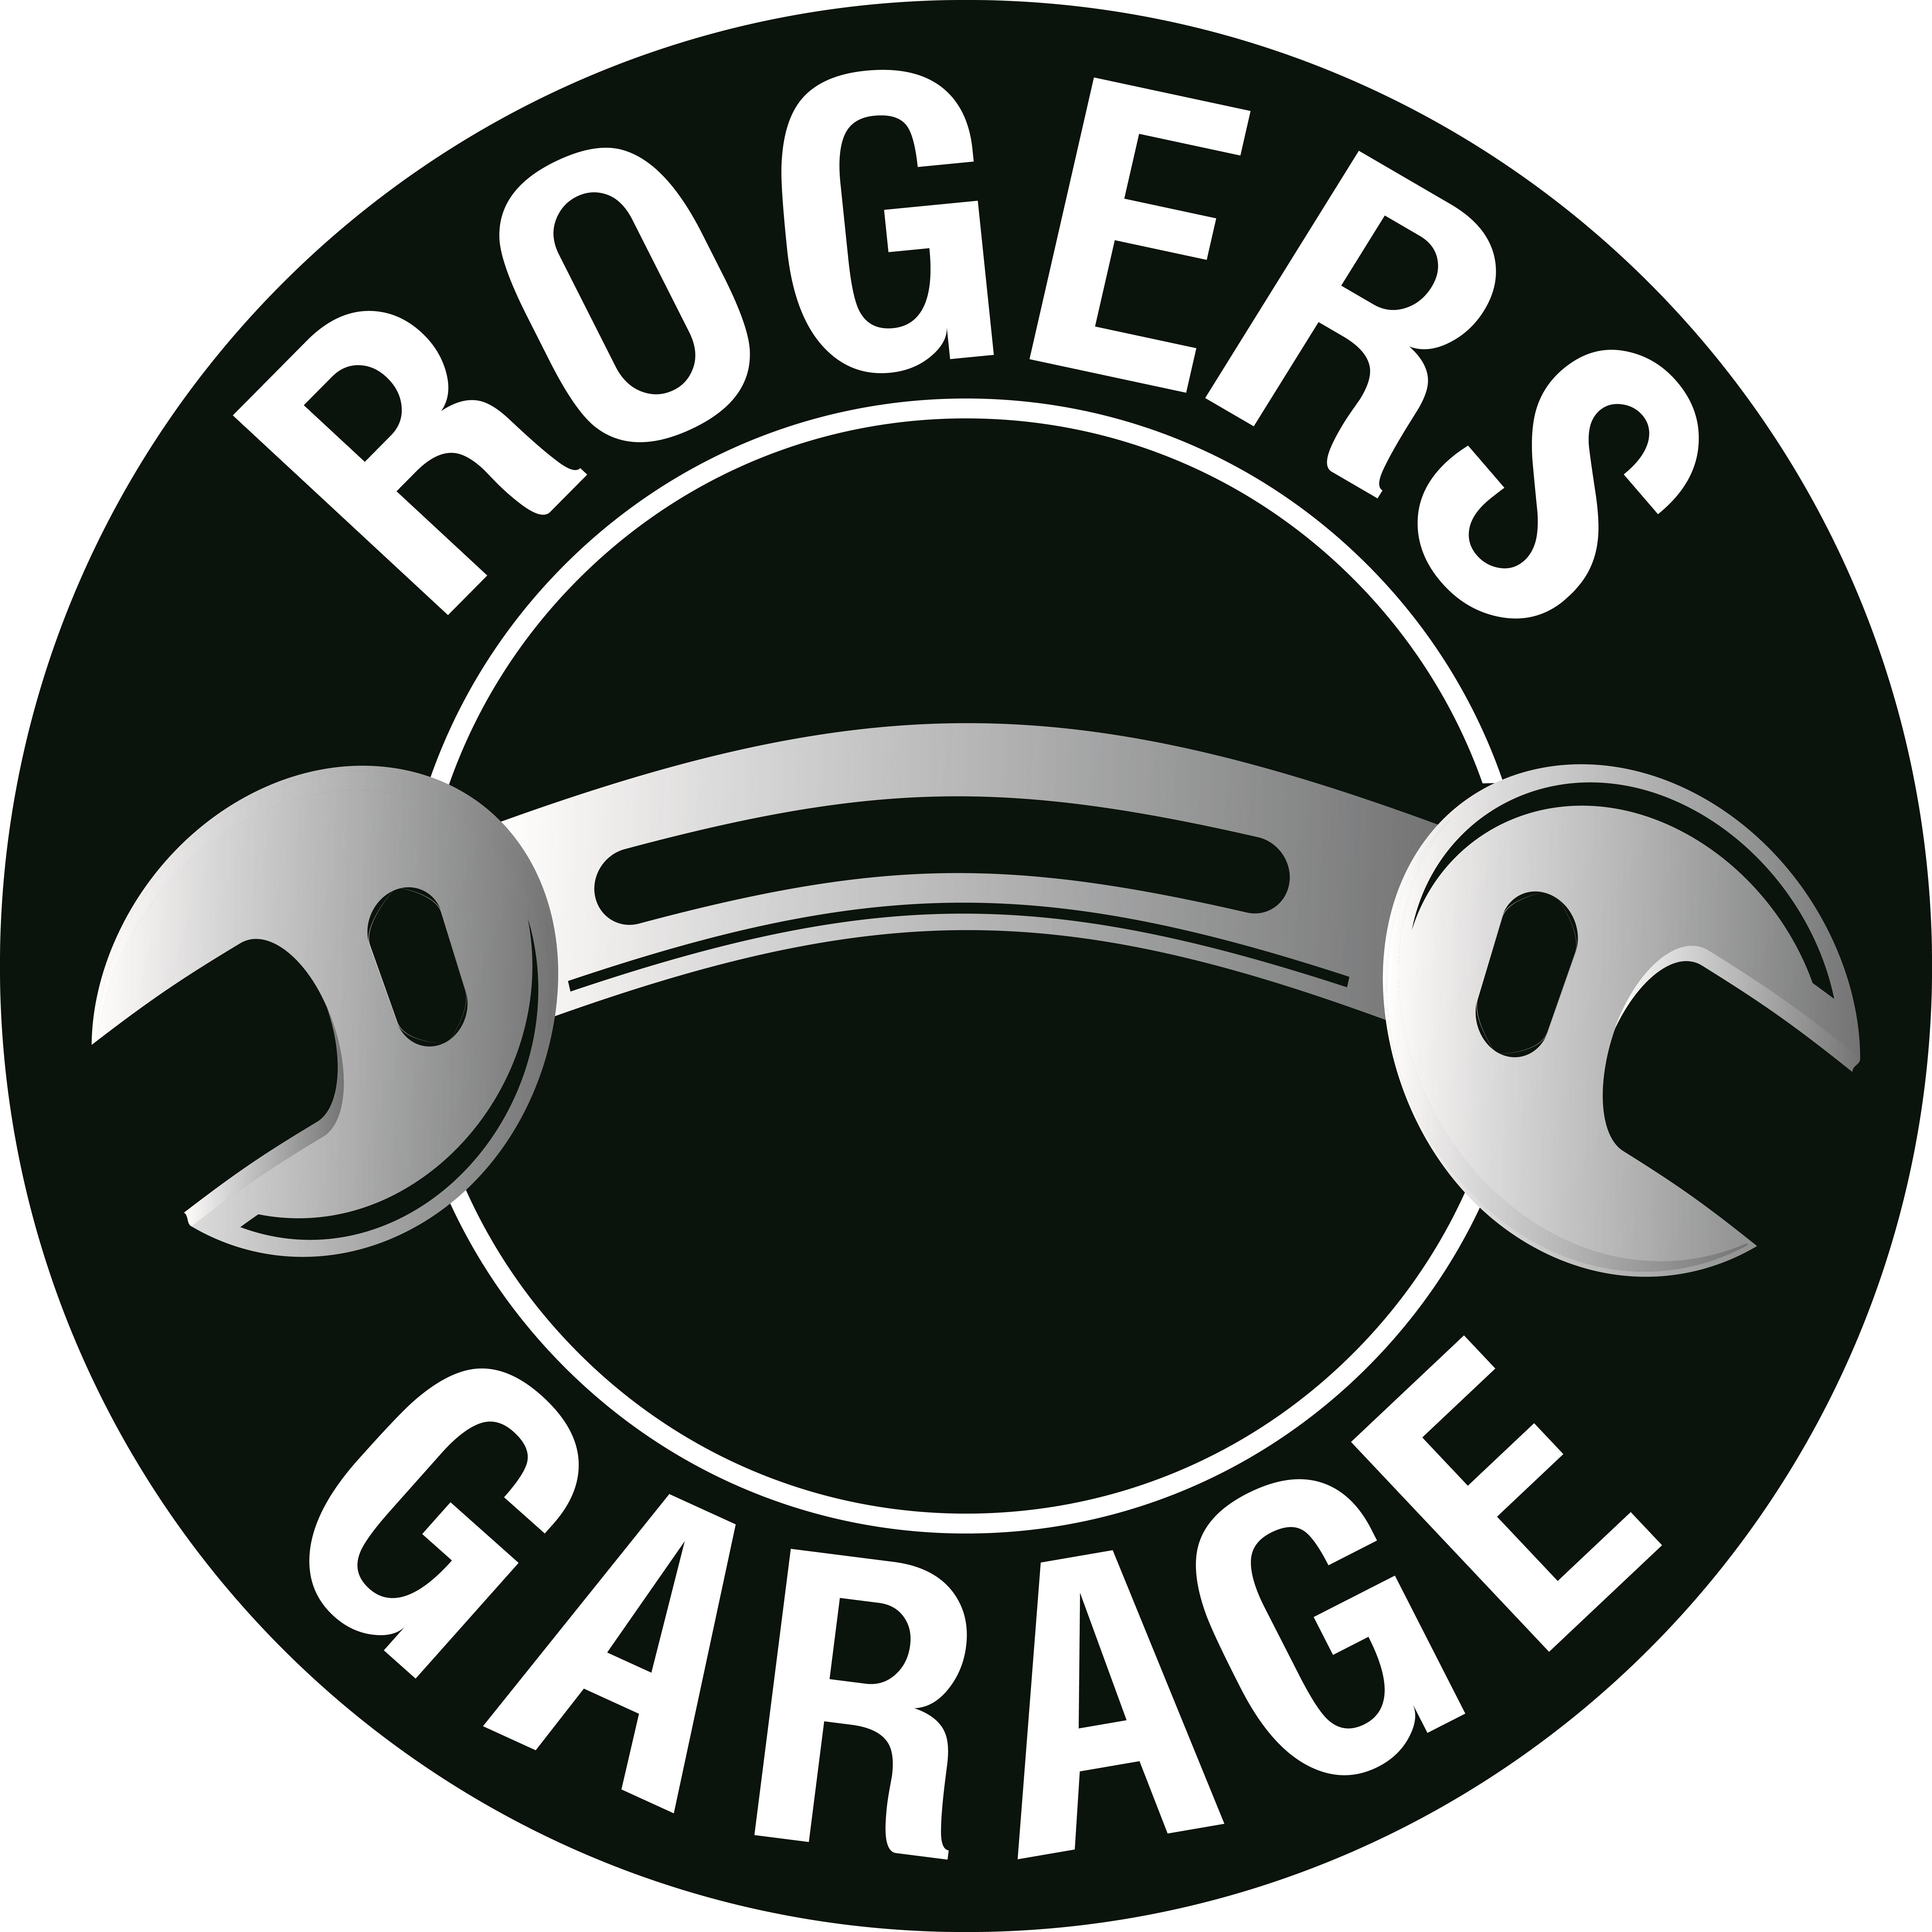 Rogers Garage - Springfield, OH - General Auto Repair & Service